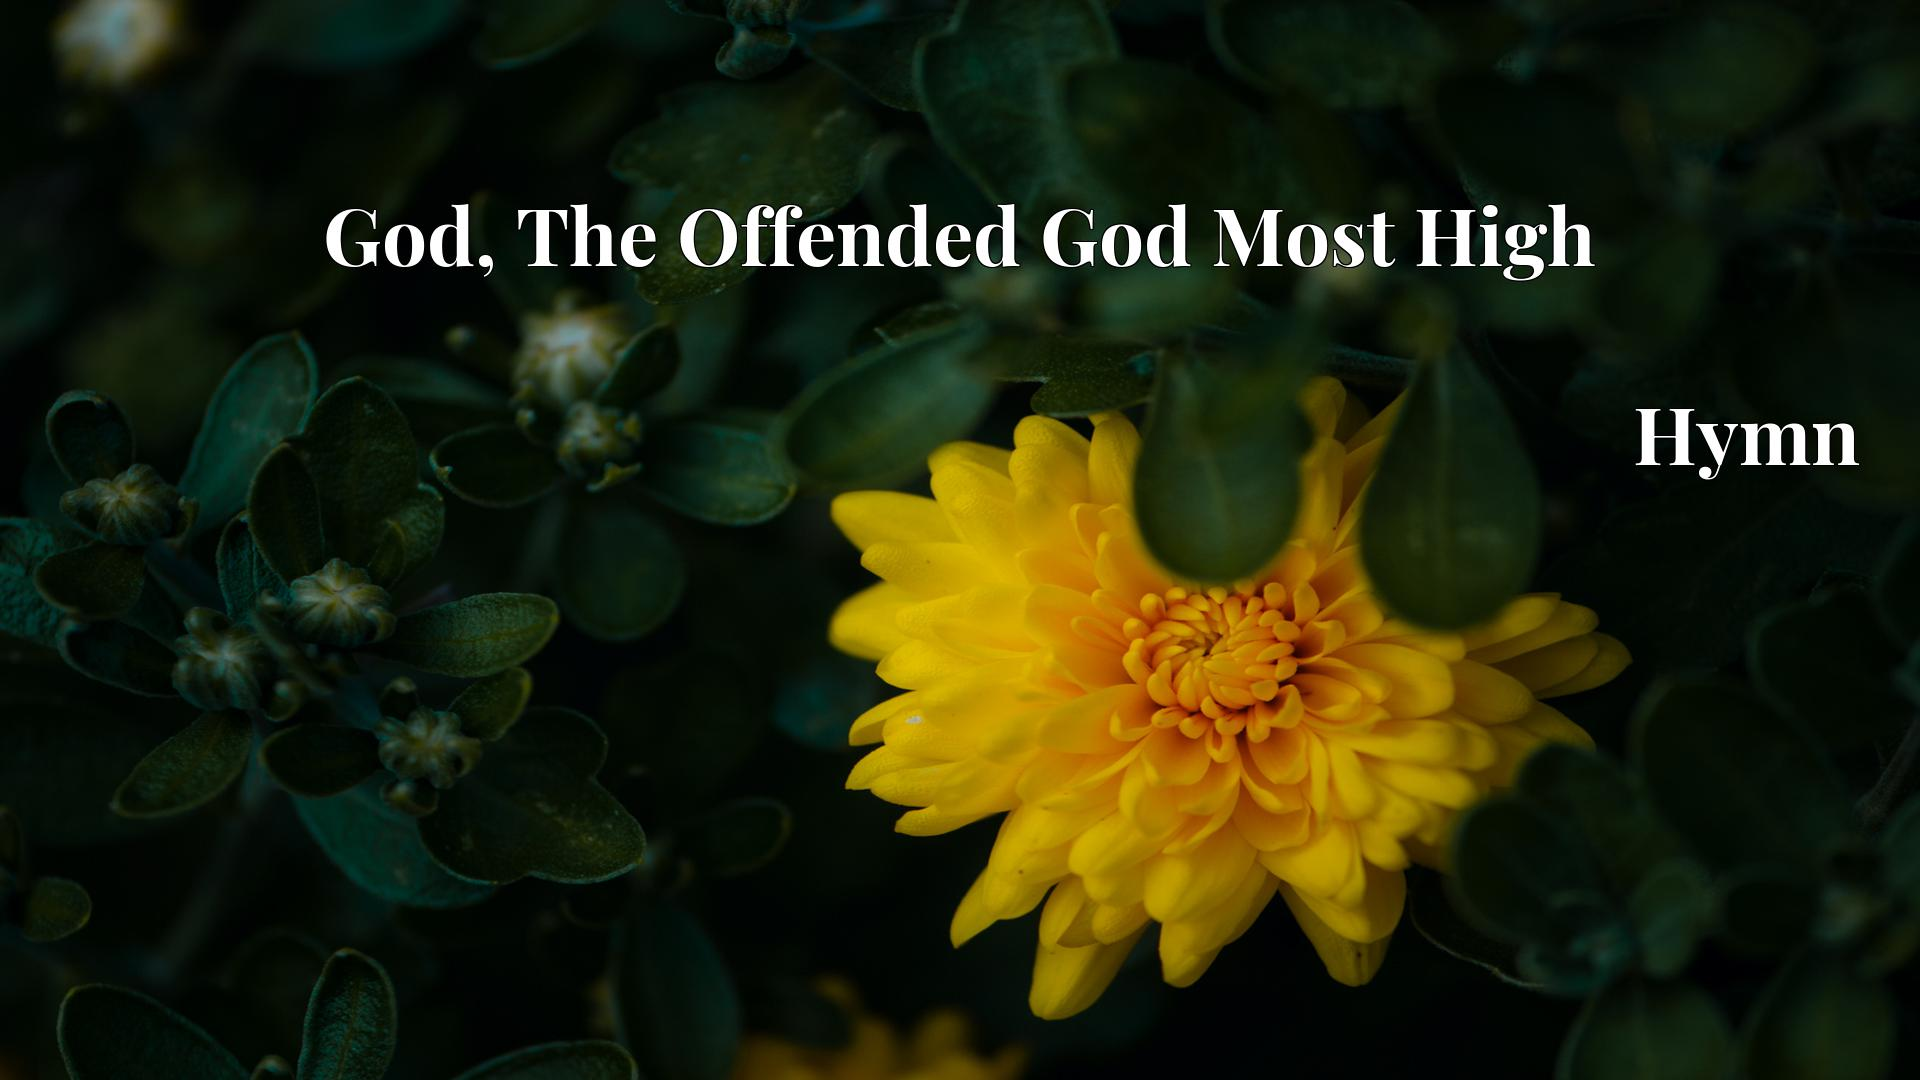 God, The Offended God Most High - Hymn